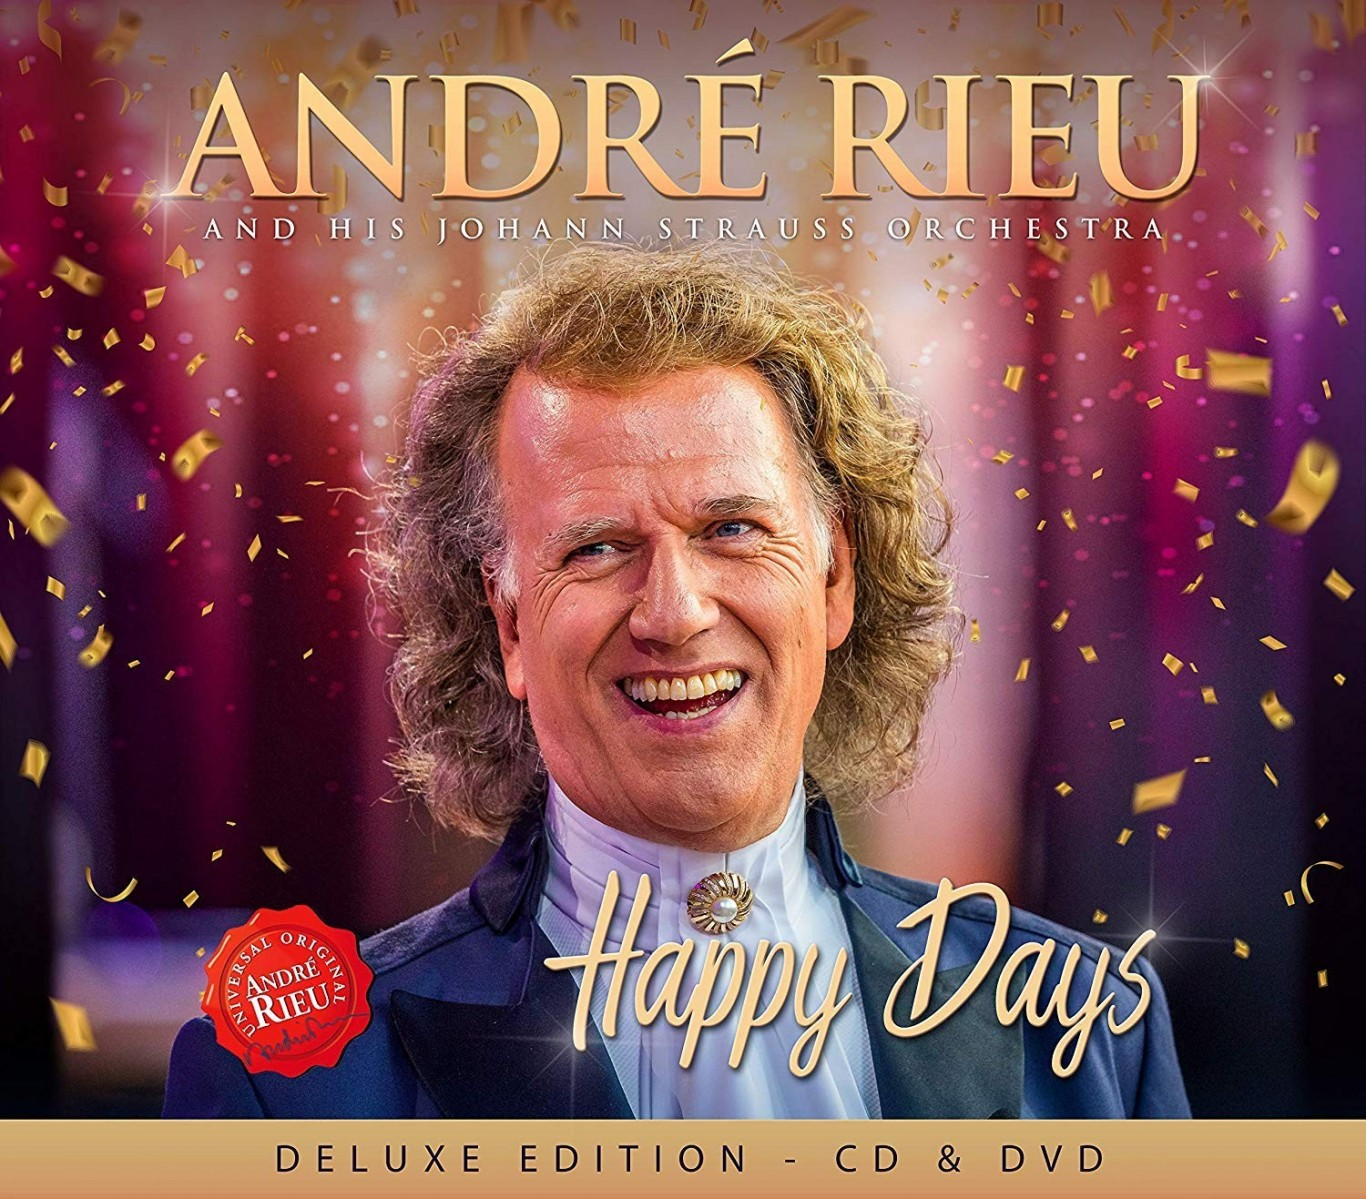 Andre Rieu - Happy Days (Deluxe Edition) CD+DVD - 744475487980